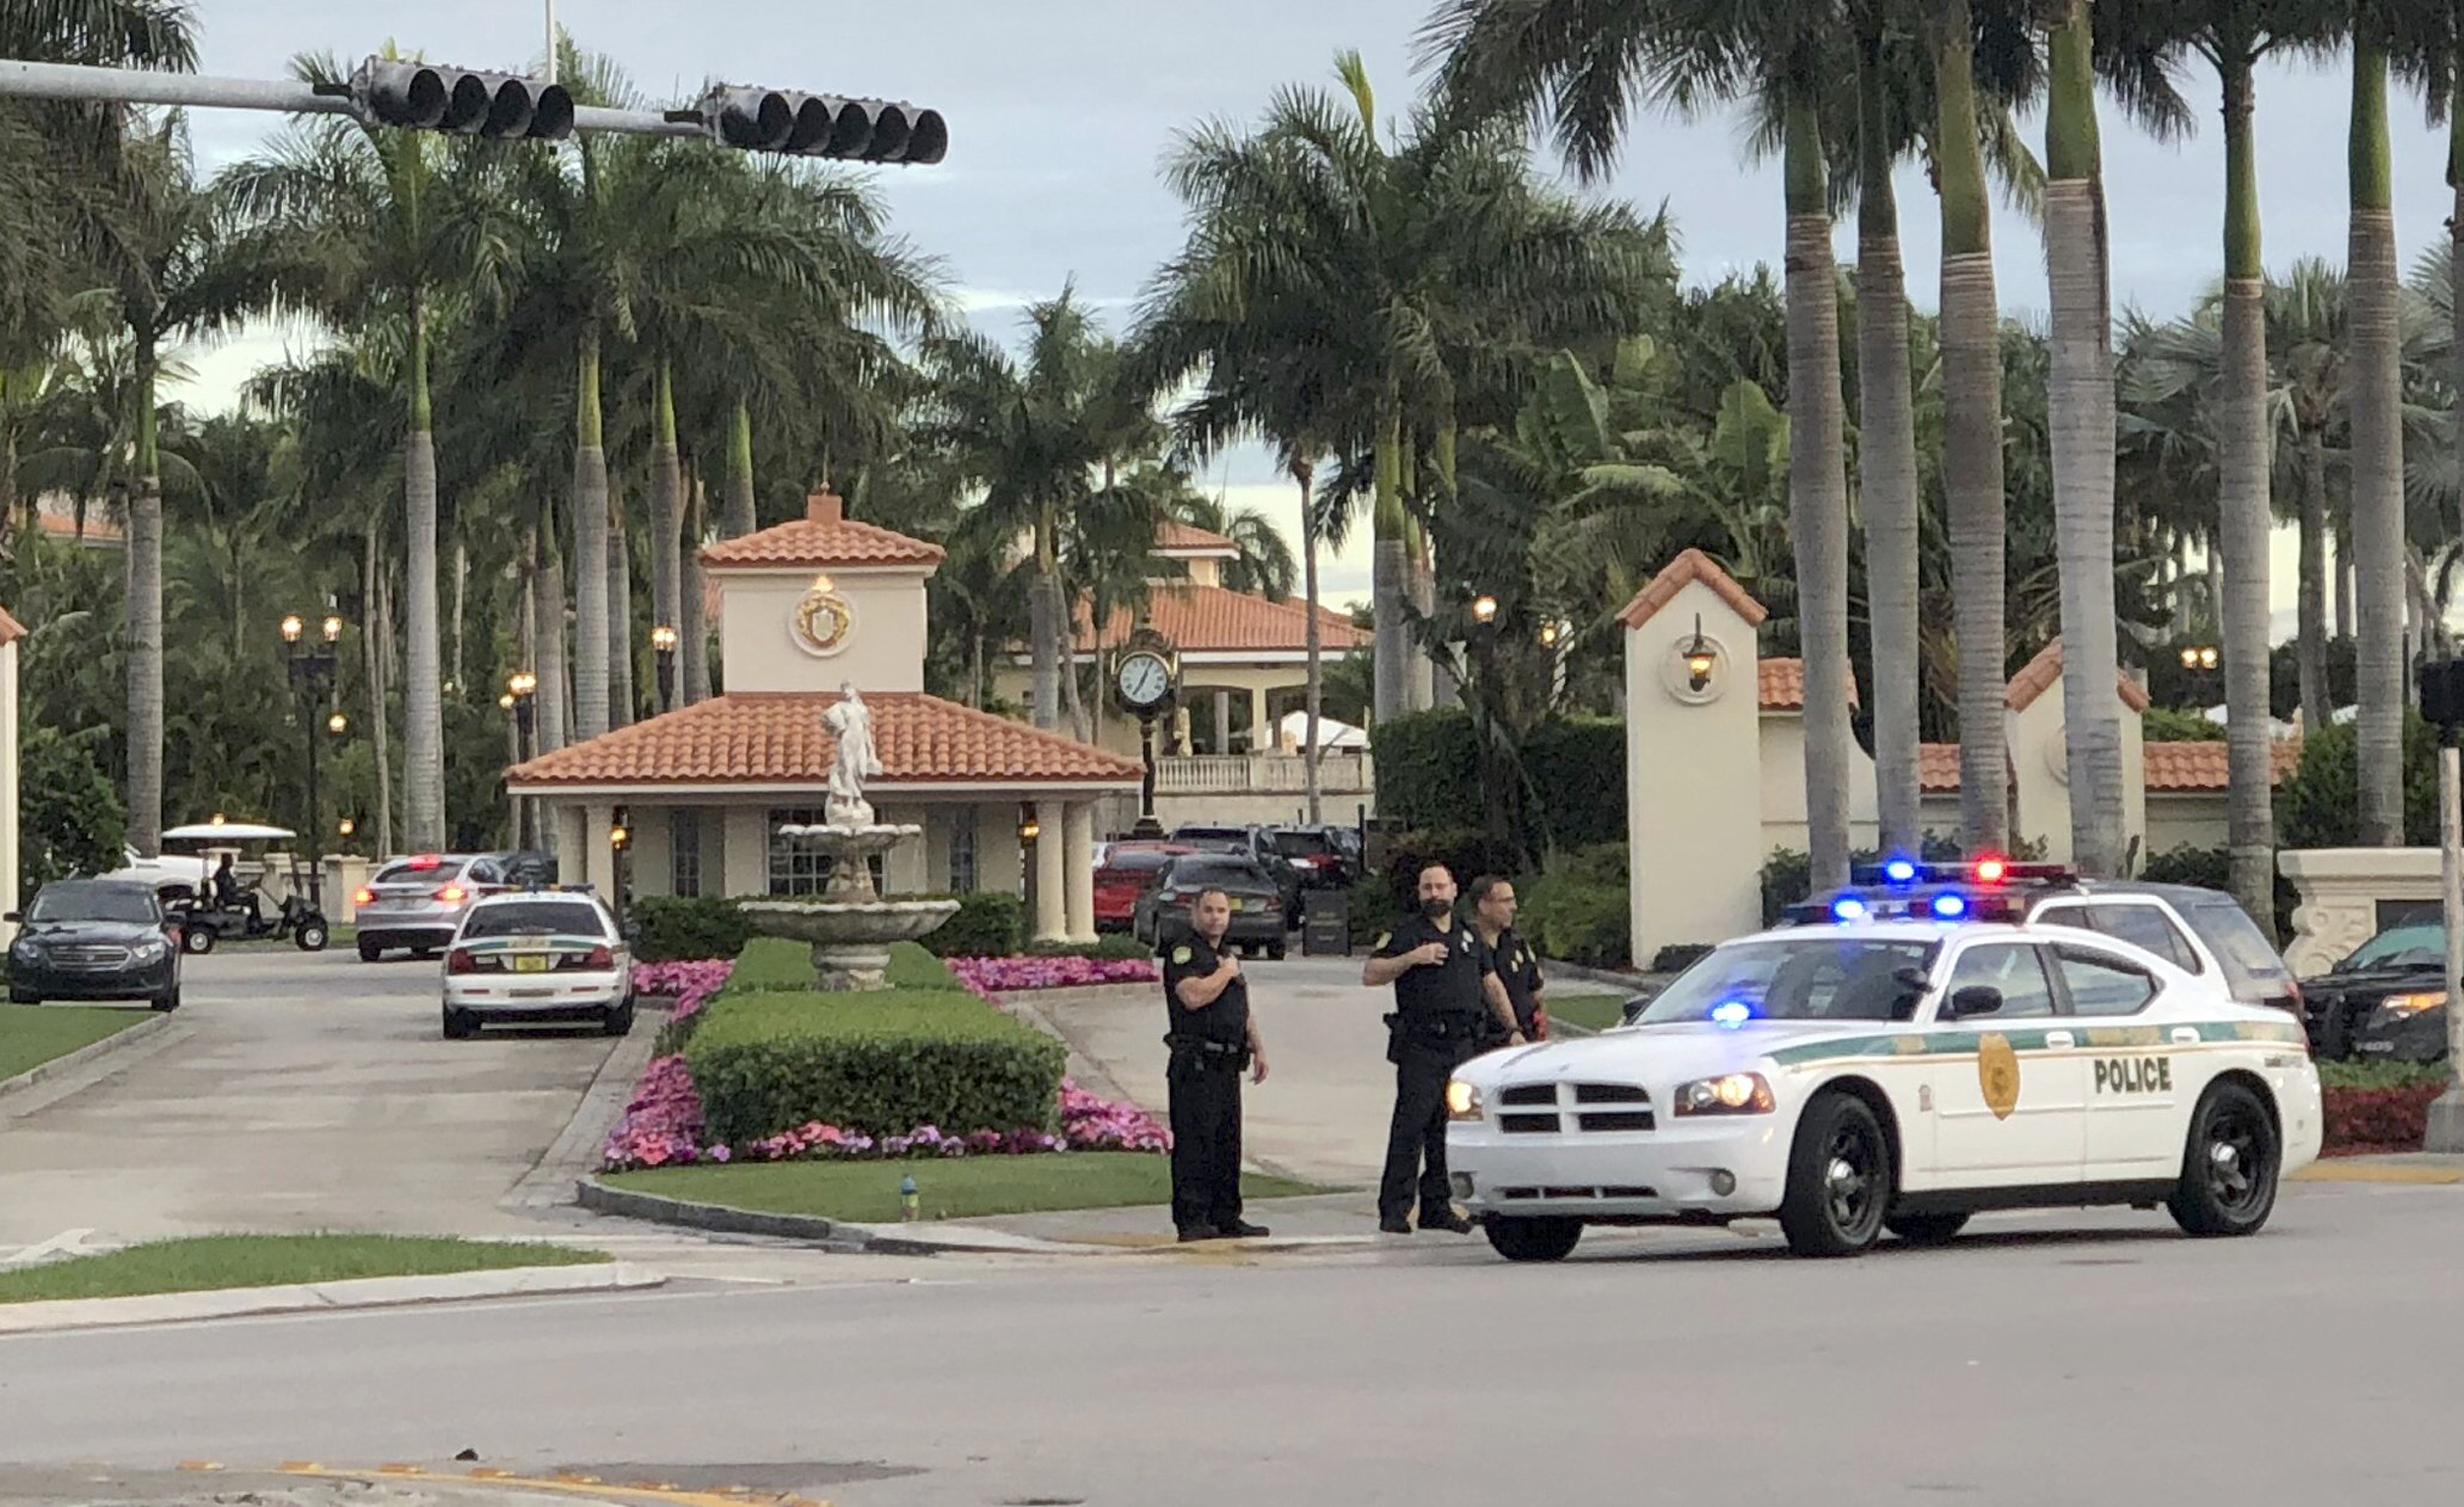 Man shot after confrontation with police at Trump resort